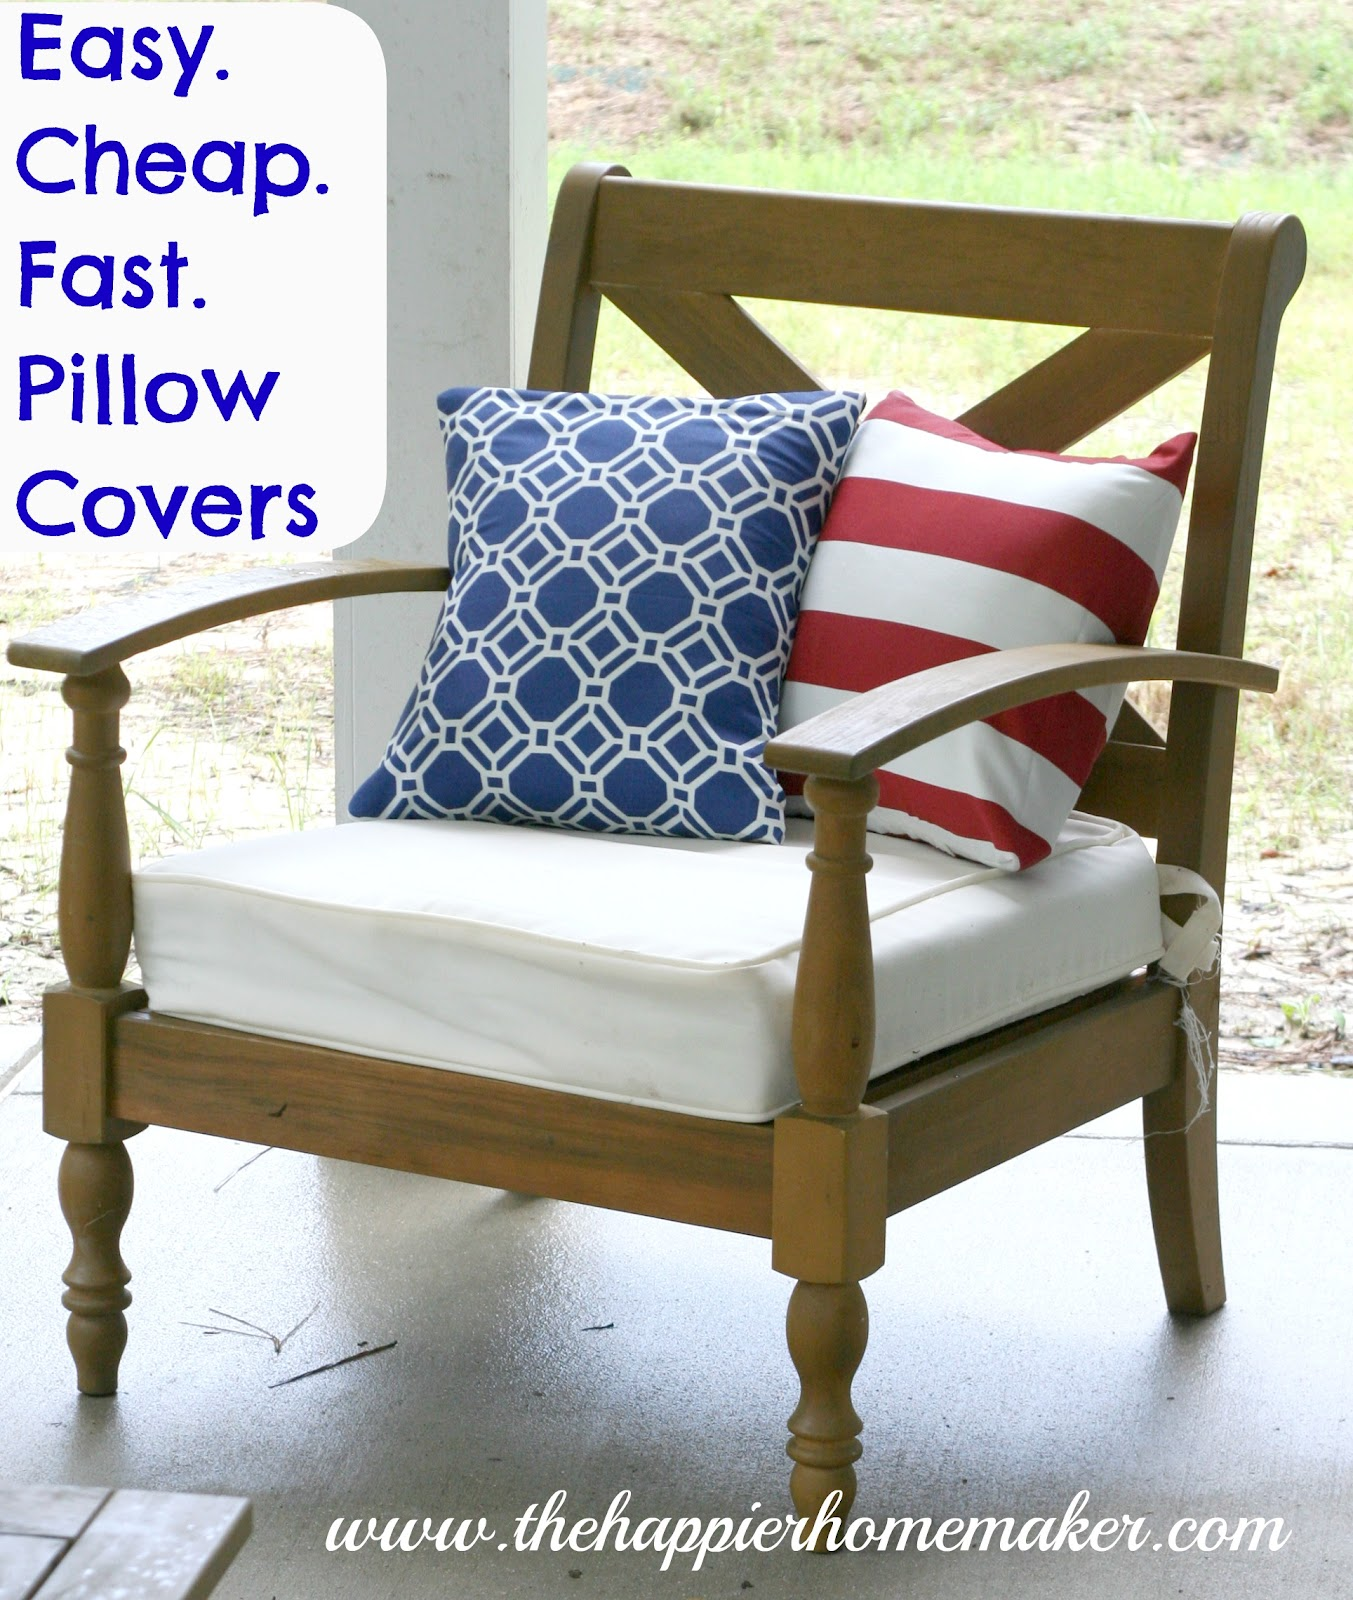 wooden patio chair with white cushion and patriotic red white and blue pillows